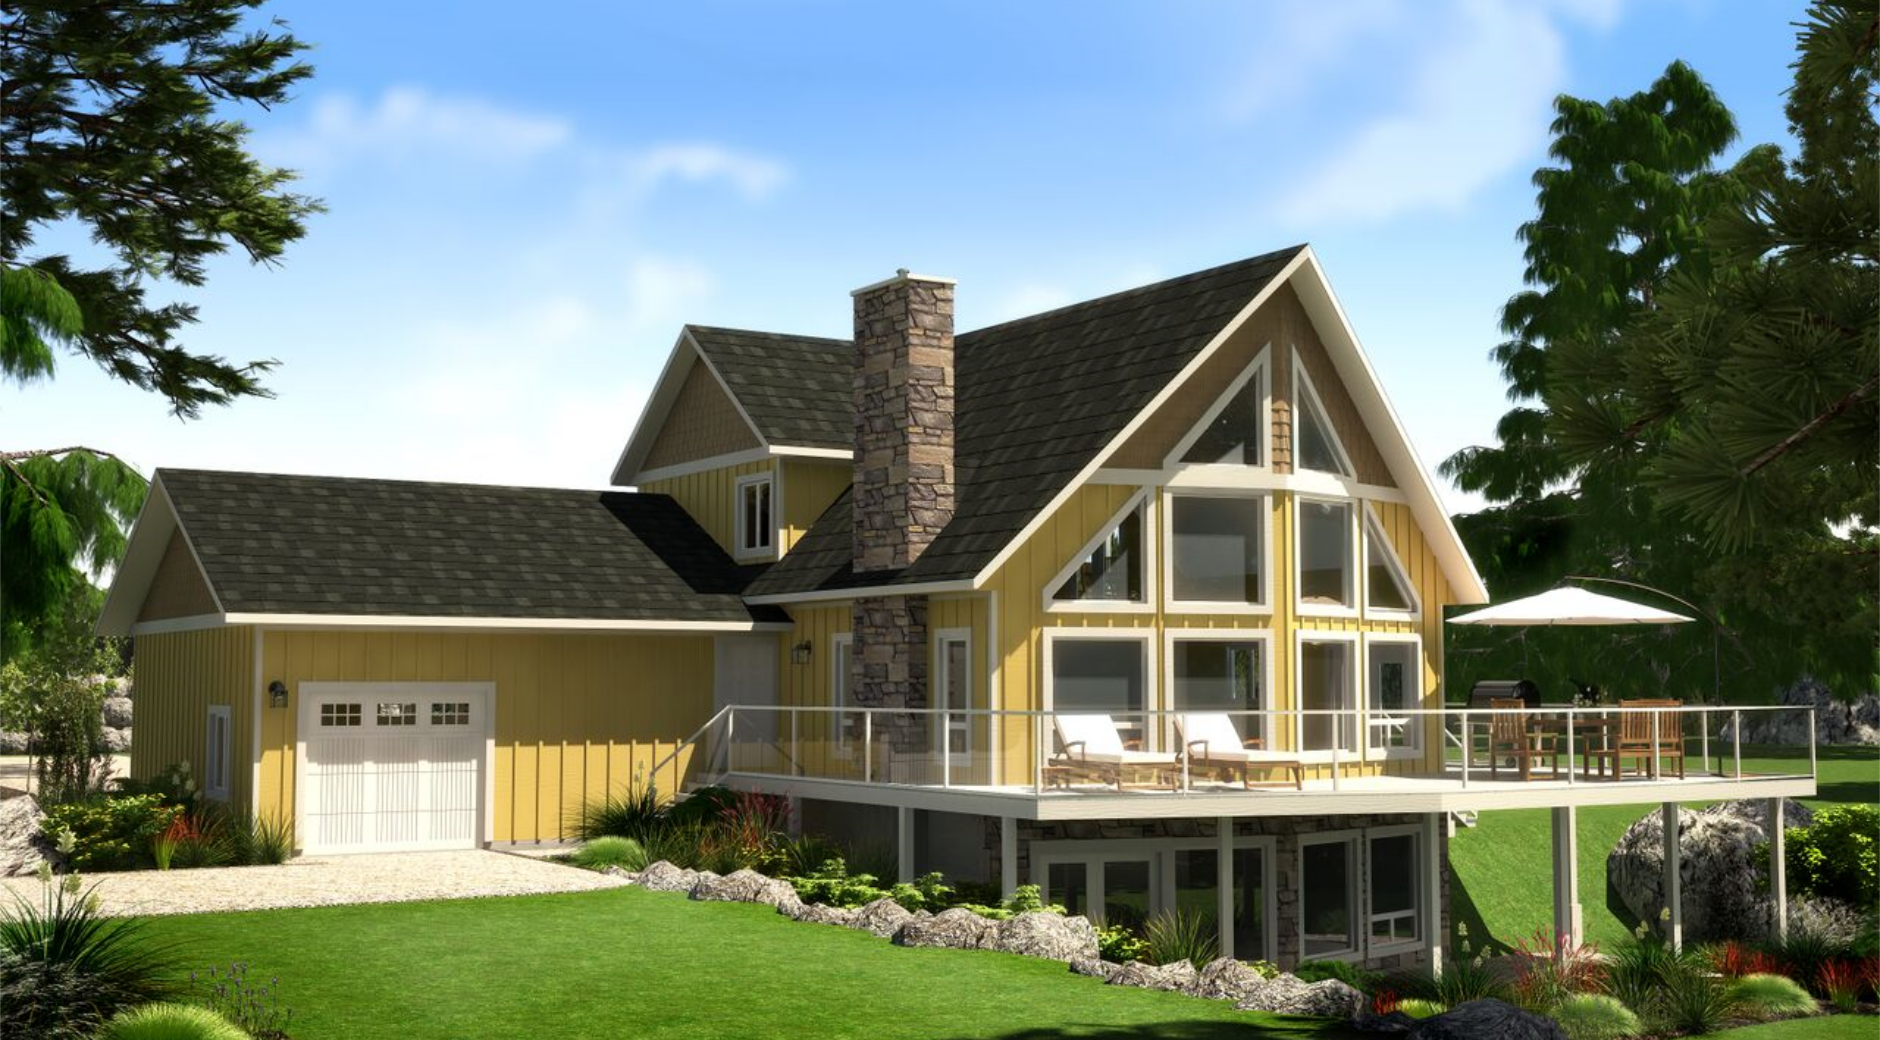 Pin by Brenda on House Plans Lake house plans, Cottage